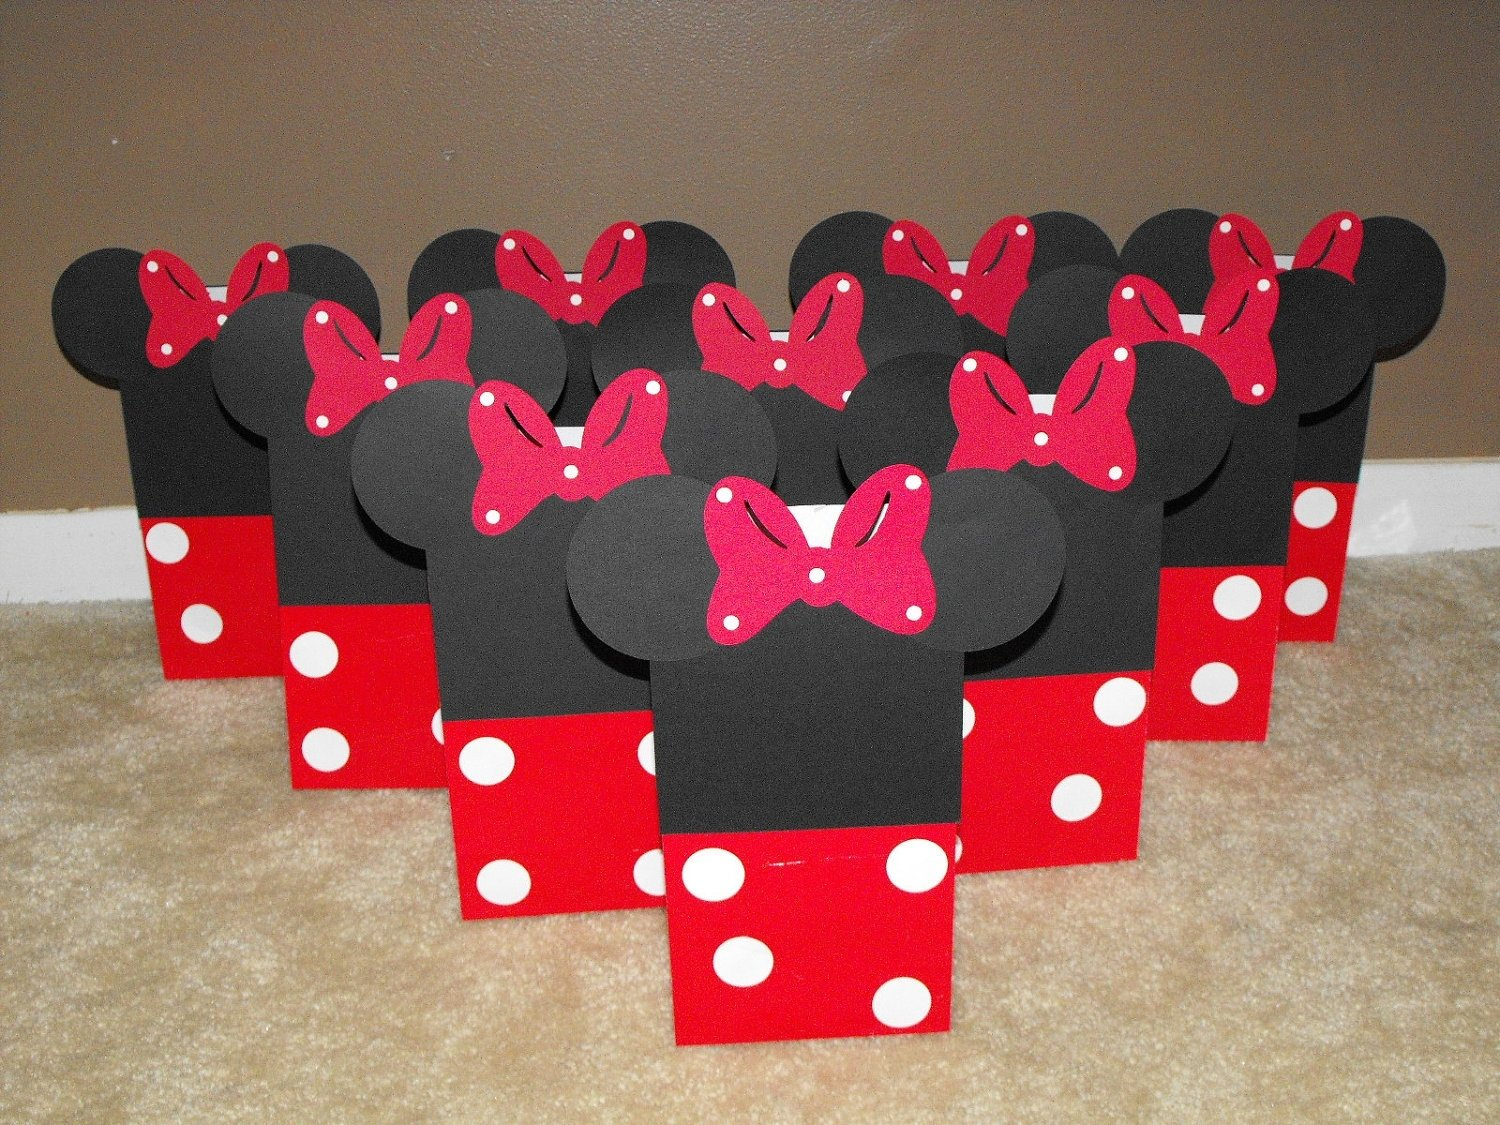 10 Stylish Red Minnie Mouse Party Ideas minnie mouse party supplies nisartmacka 2020